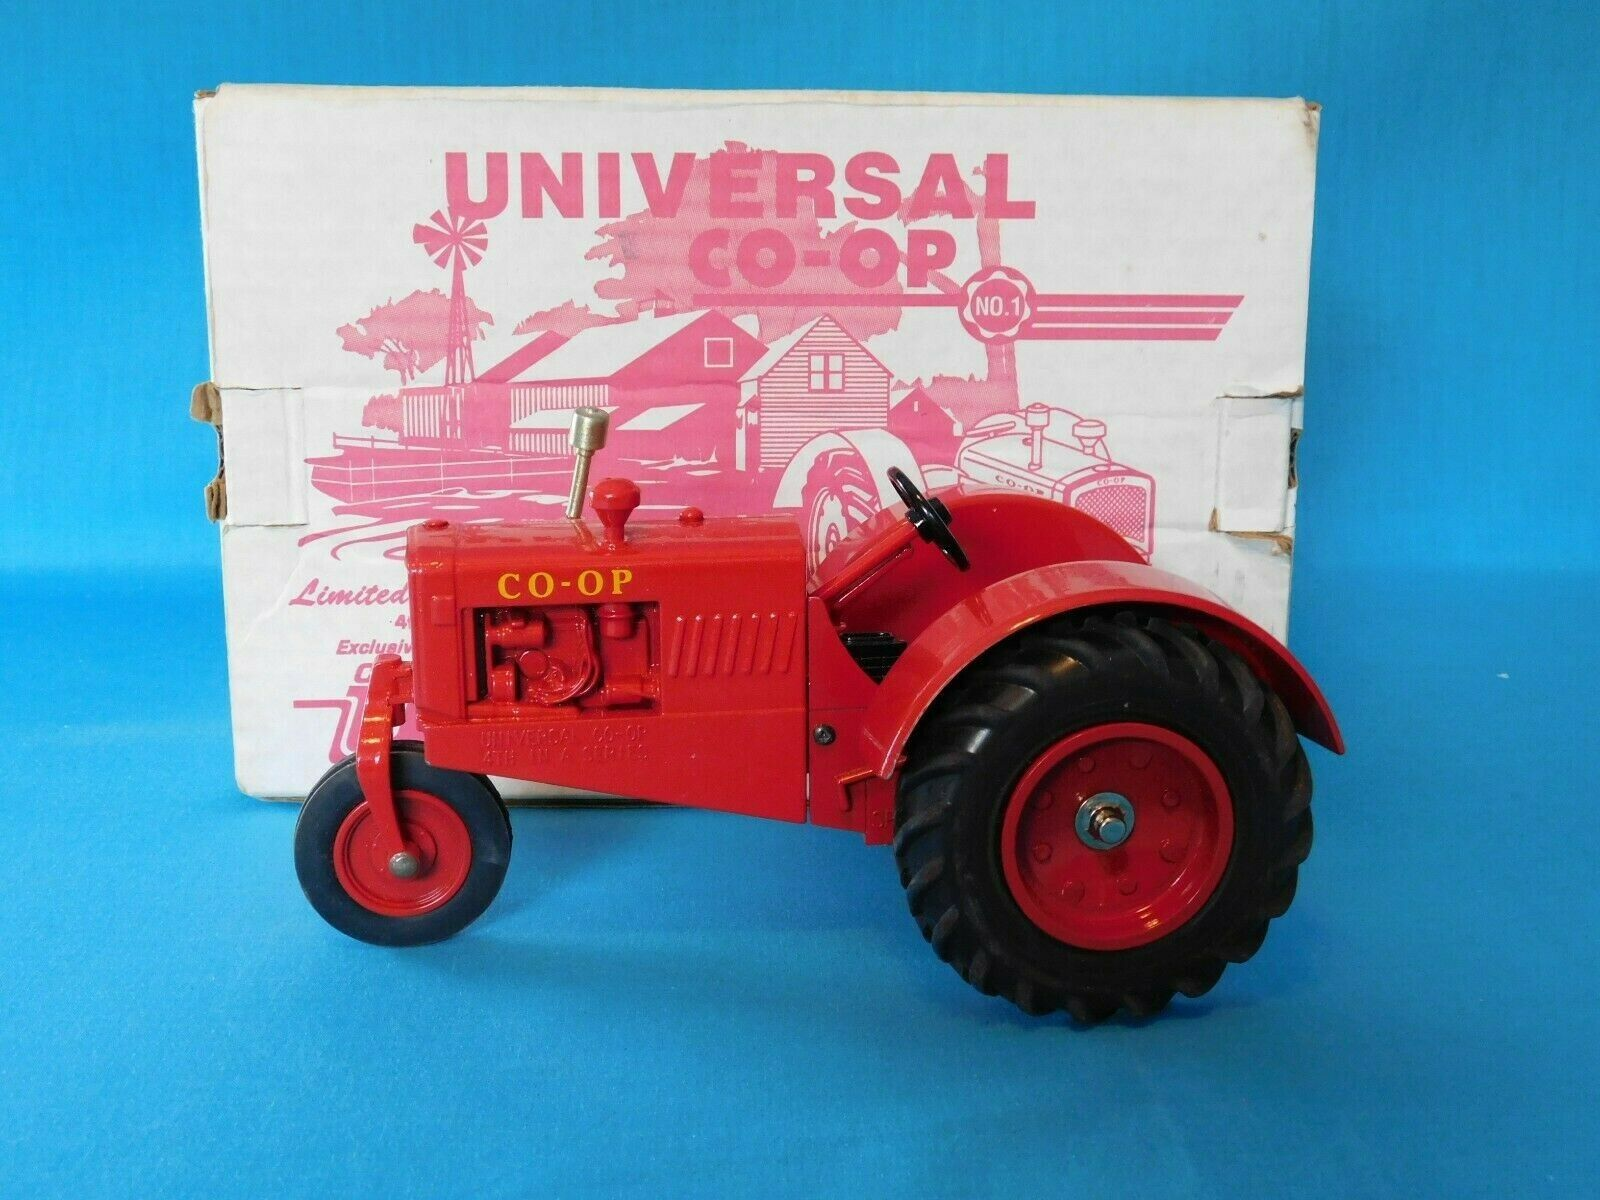 SpecCast LIMITED EDITION NIB UNIVERSAL NO. 1 CO-OP TRACTOR TRACTOR TRACTOR 1 16 SCALE NEW 26dc0d